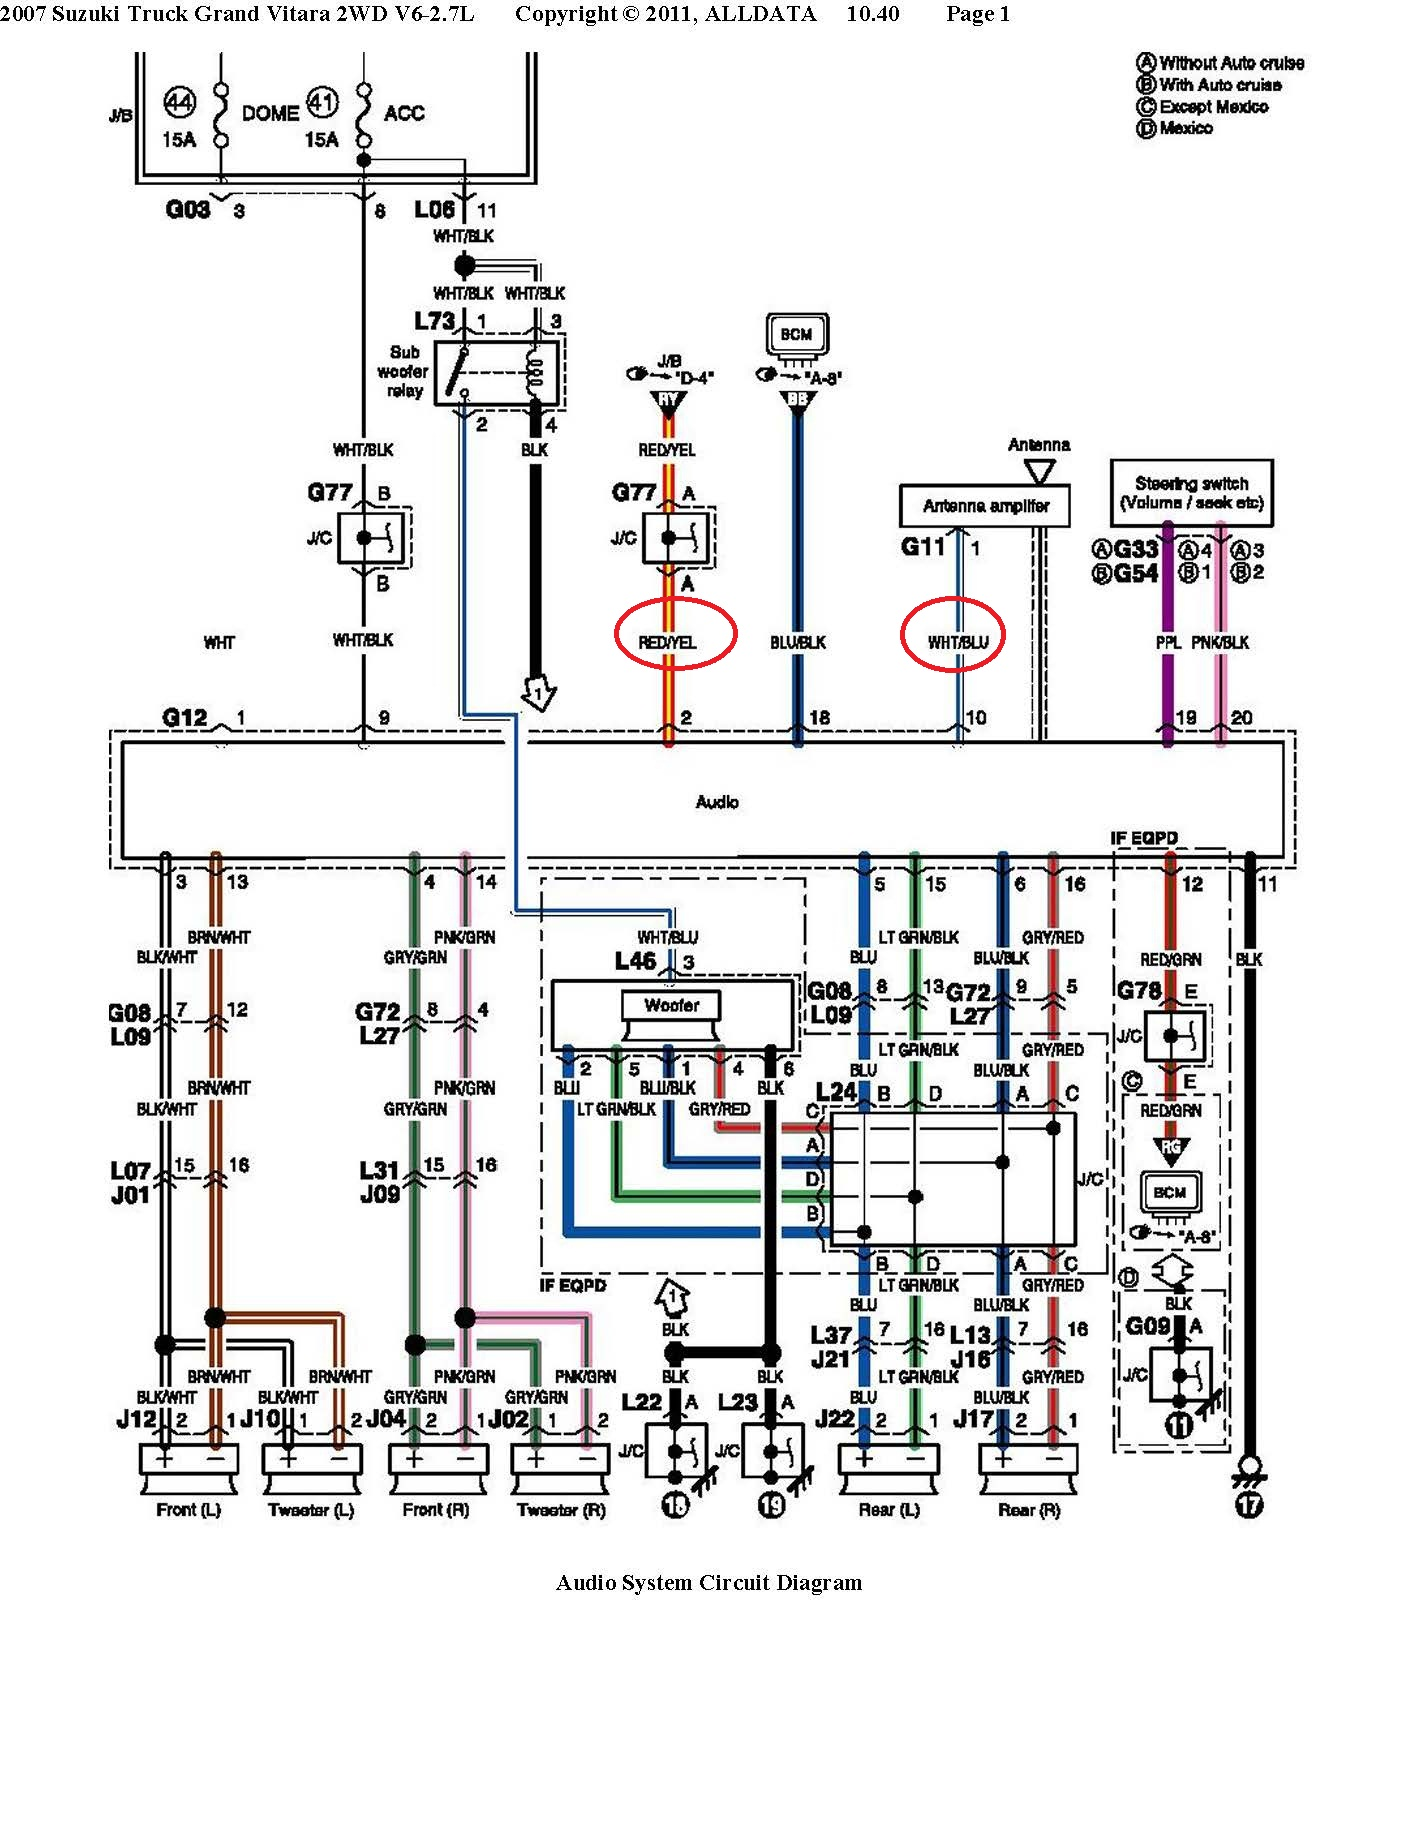 Suzuki Car Radio Stereo Audio Wiring Diagram Autoradio Connector Jvc Diagrams Wire Installation Schematic Schema Esquema De Conexiones Stecker Konektor Connecteur Cable